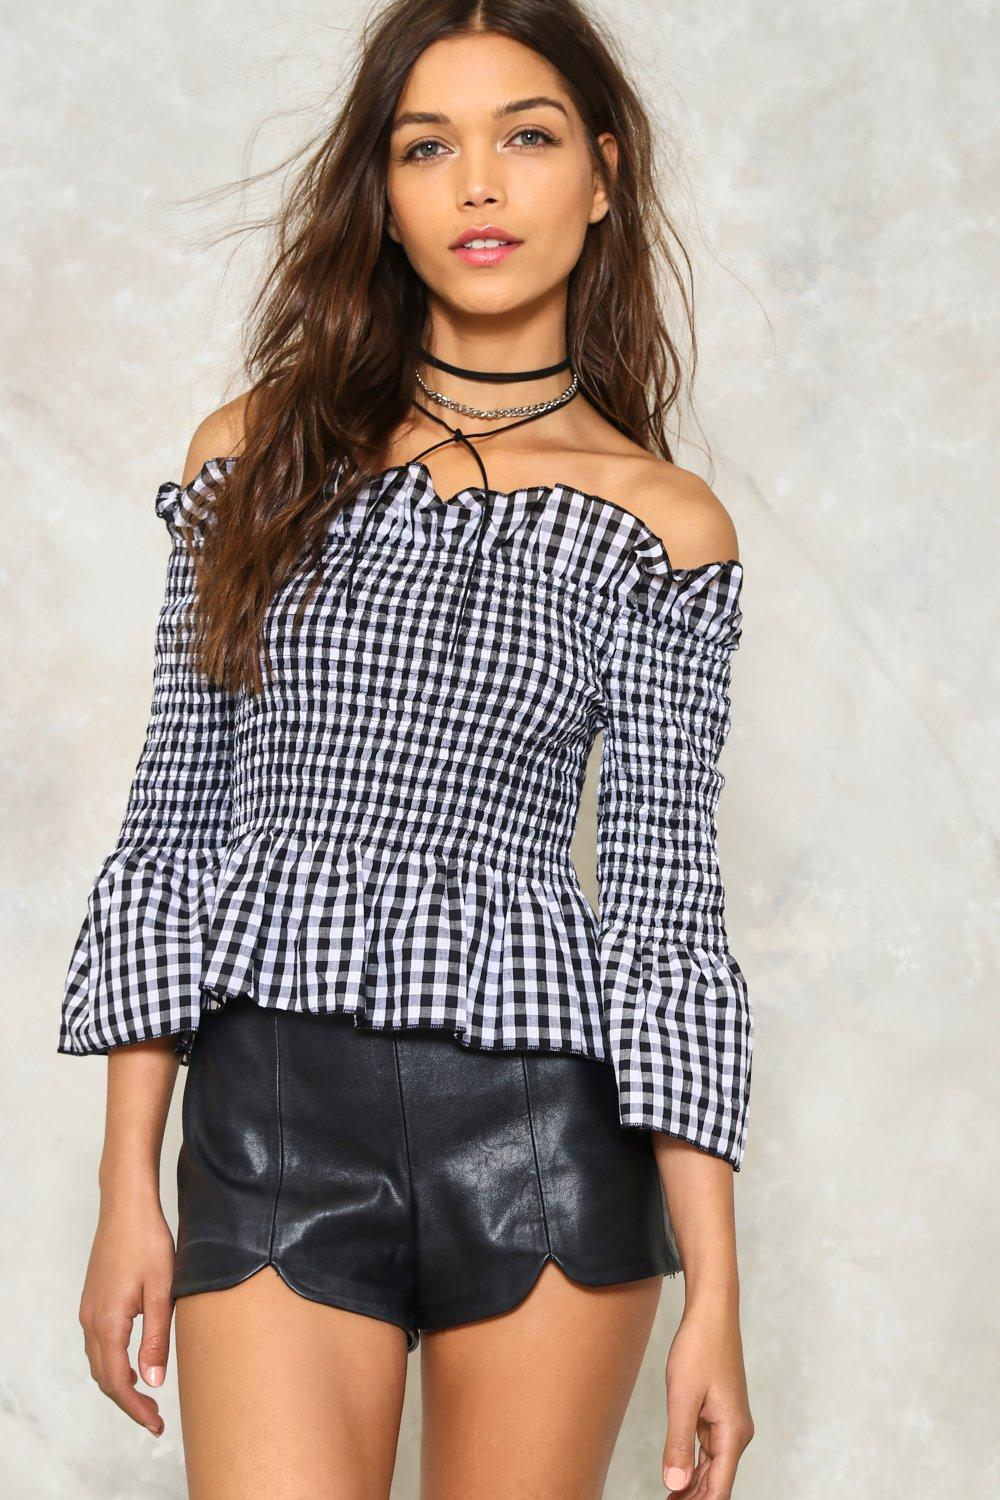 d9aeae44c9c Square Up Off-the-Shoulder Gingham Top | Shop Clothes at Nasty Gal!